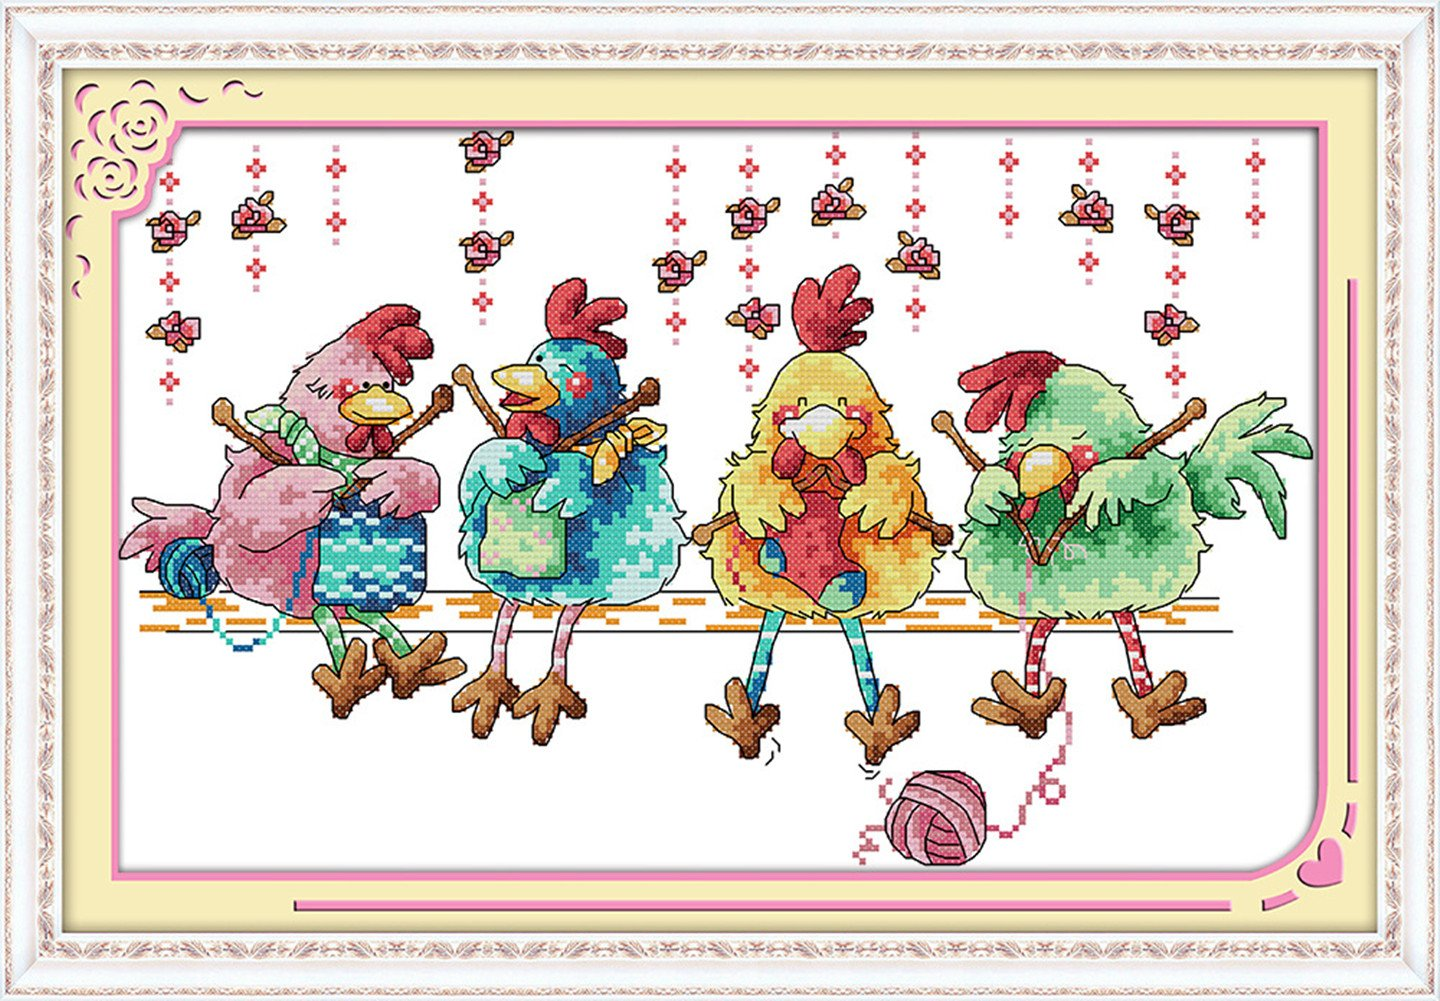 """eGoodn Cross Stitch Stamped Kit Pre-Printed Pattern Knitting Chickens, 11CT Aida Fabric Size 20.5"""" x 13.8 for Embroidery Needlework Art Crafts Lovers, No Frame ED86"""